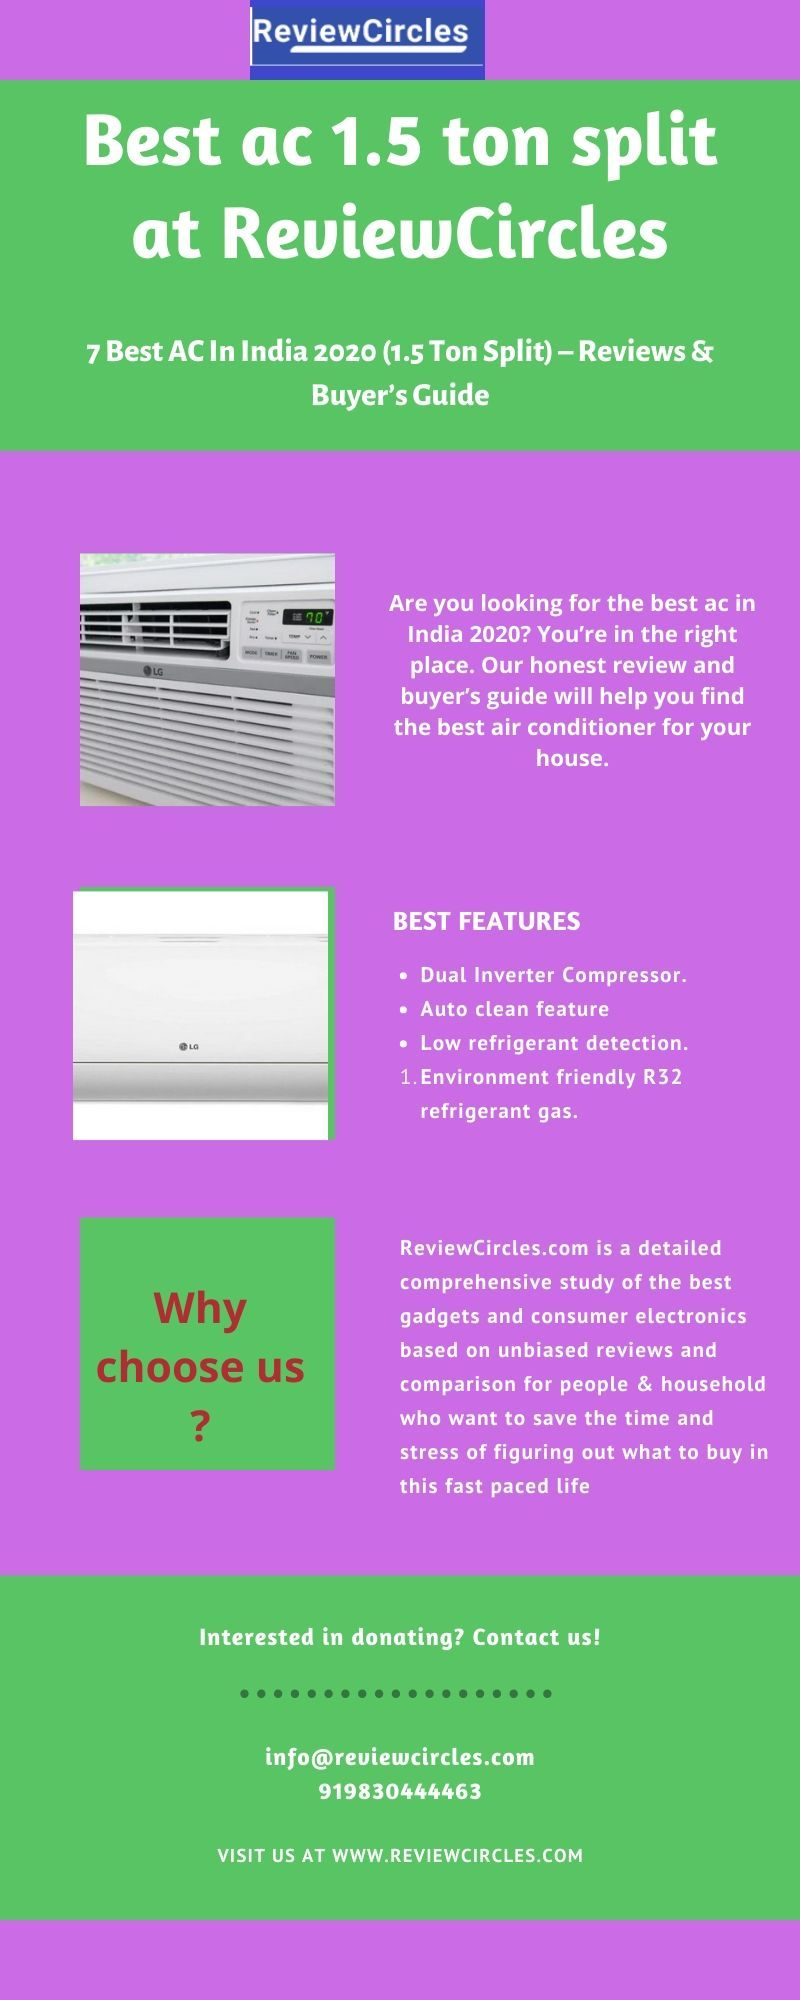 7 Best AC In India 2020 (1.5 Ton Split) Reviews & Buyer